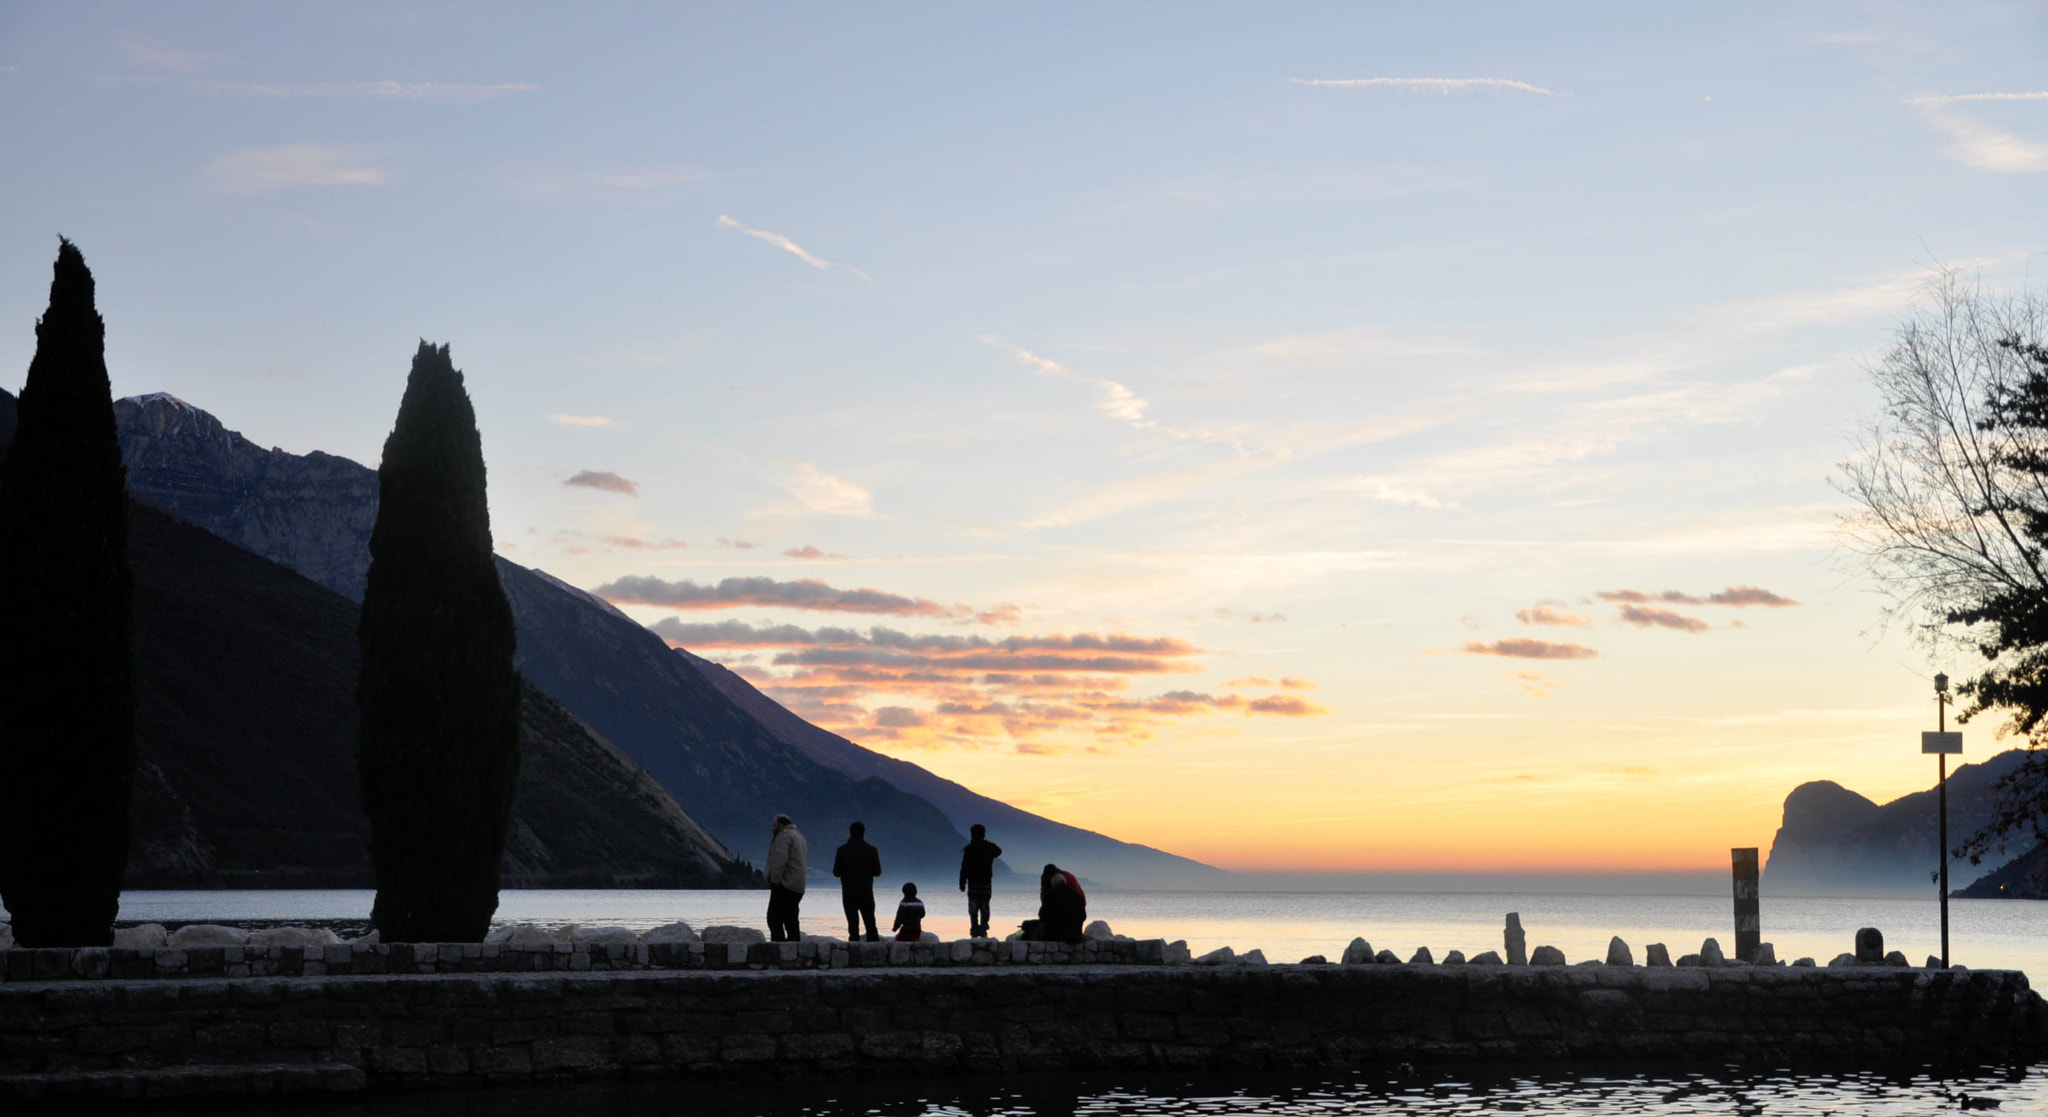 Photograph Sunset on Garda lake by Cinzia Planchenstainer on 500px